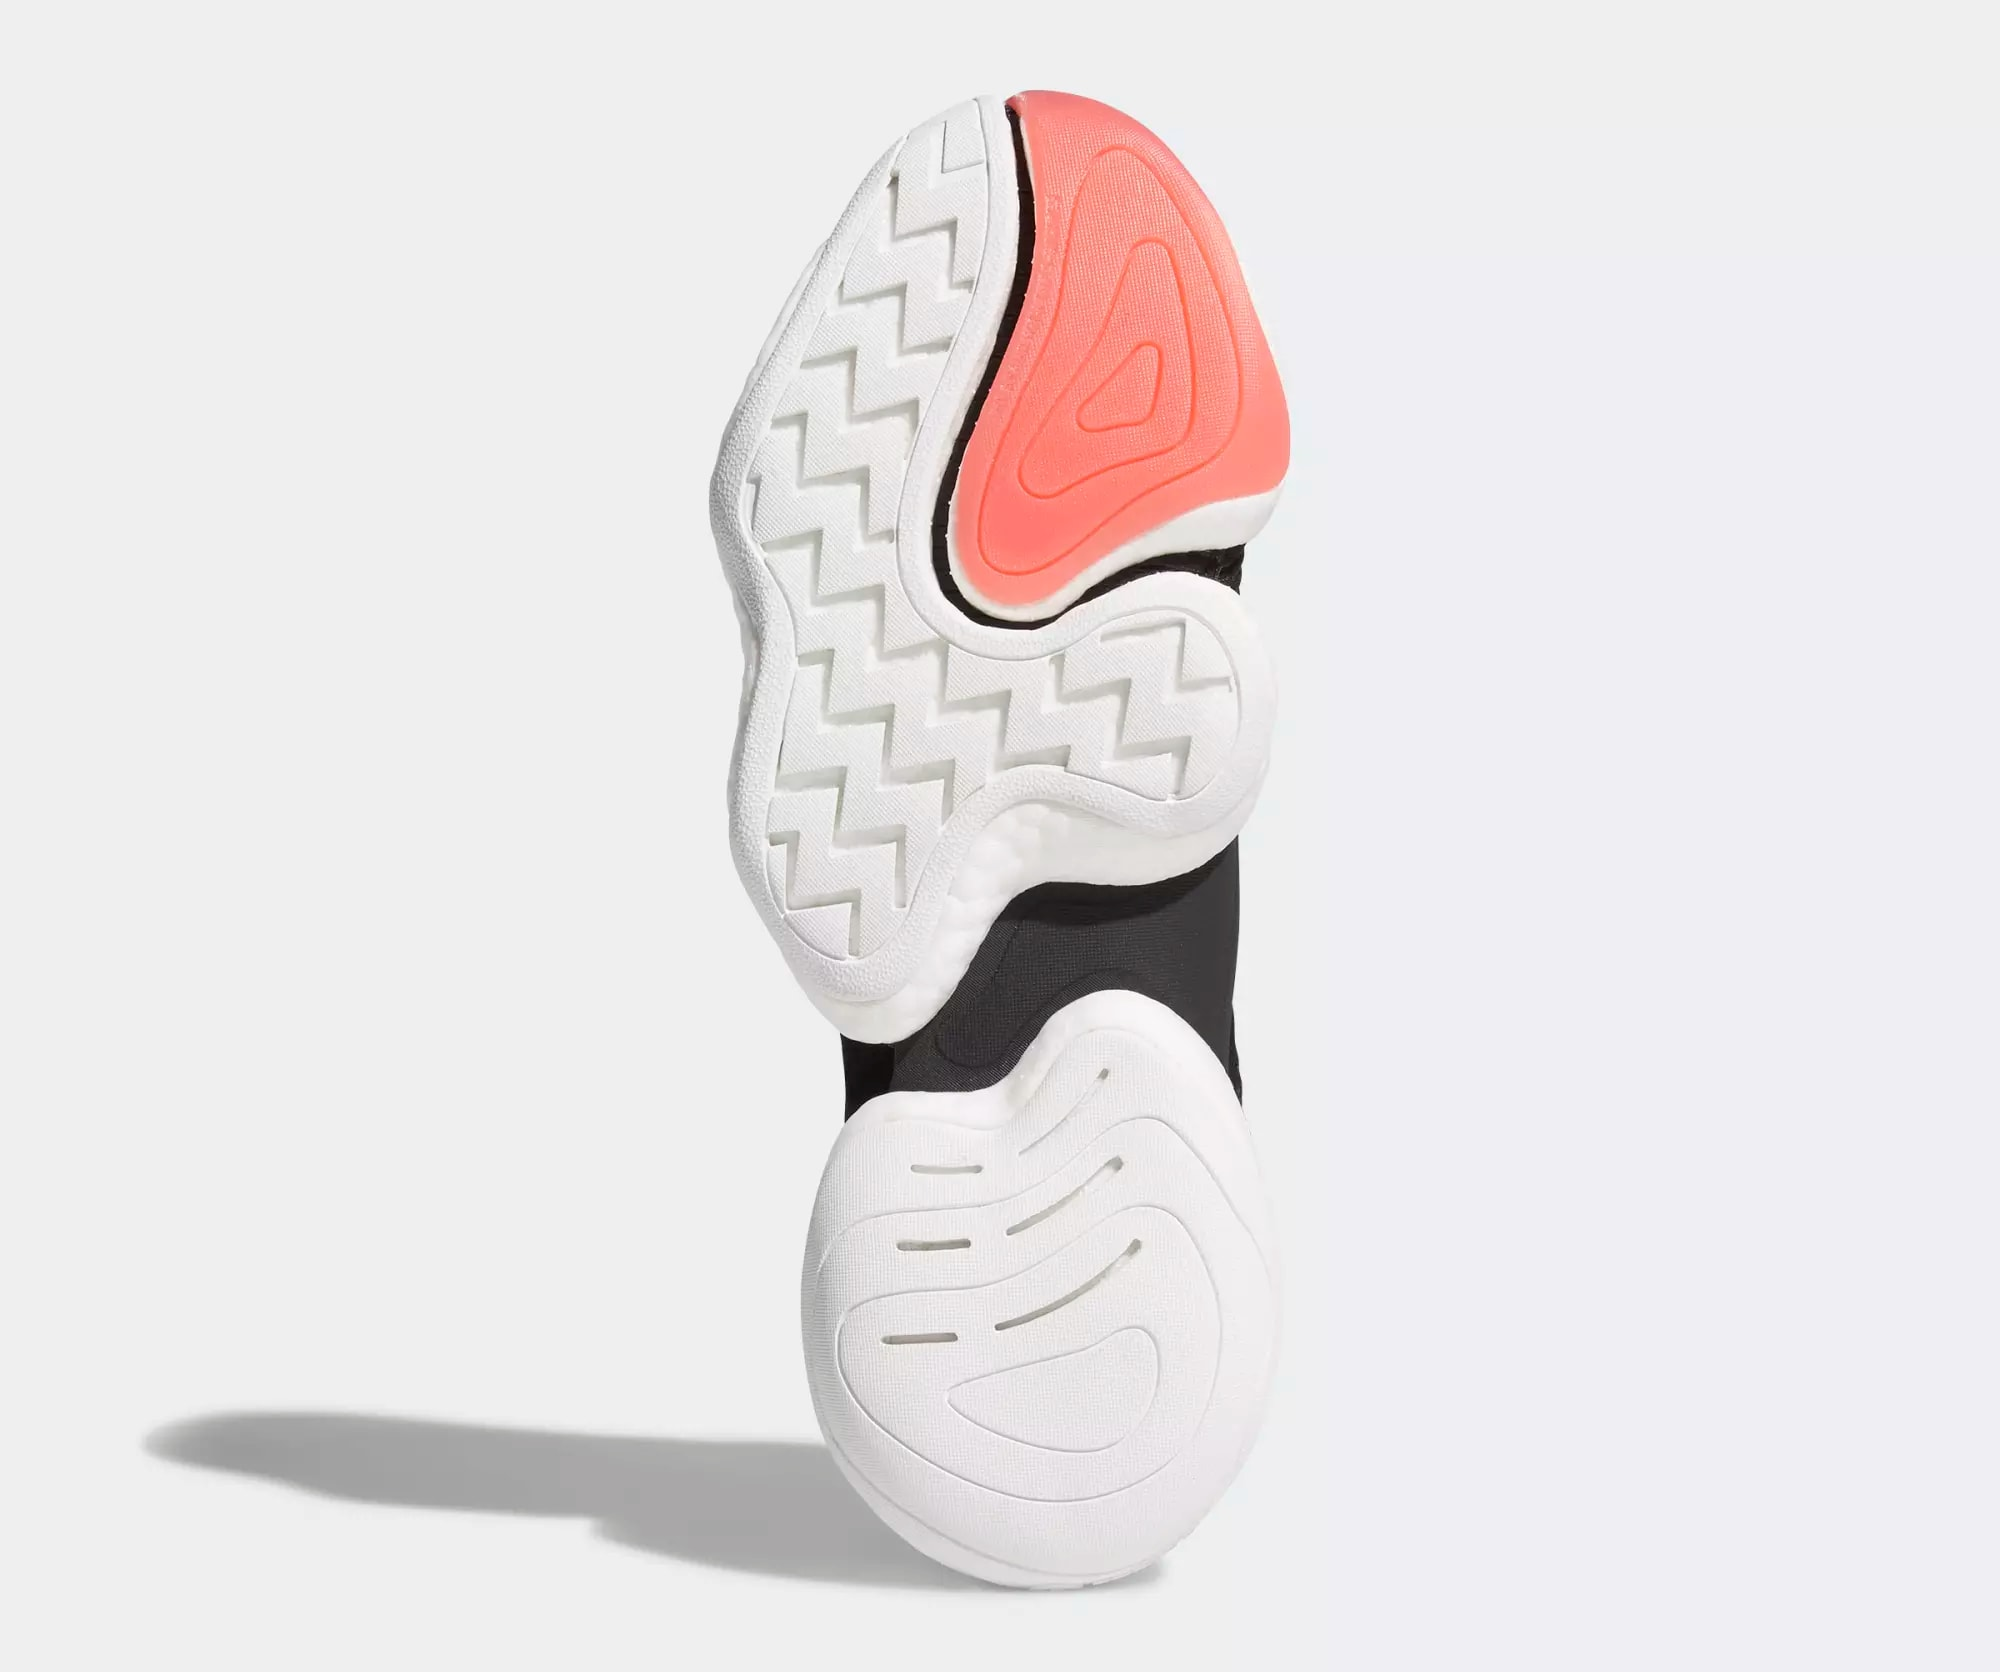 Adidas Crazy BYW 'Core Black/Cloud White/Bright Red' B37480 (Sole)